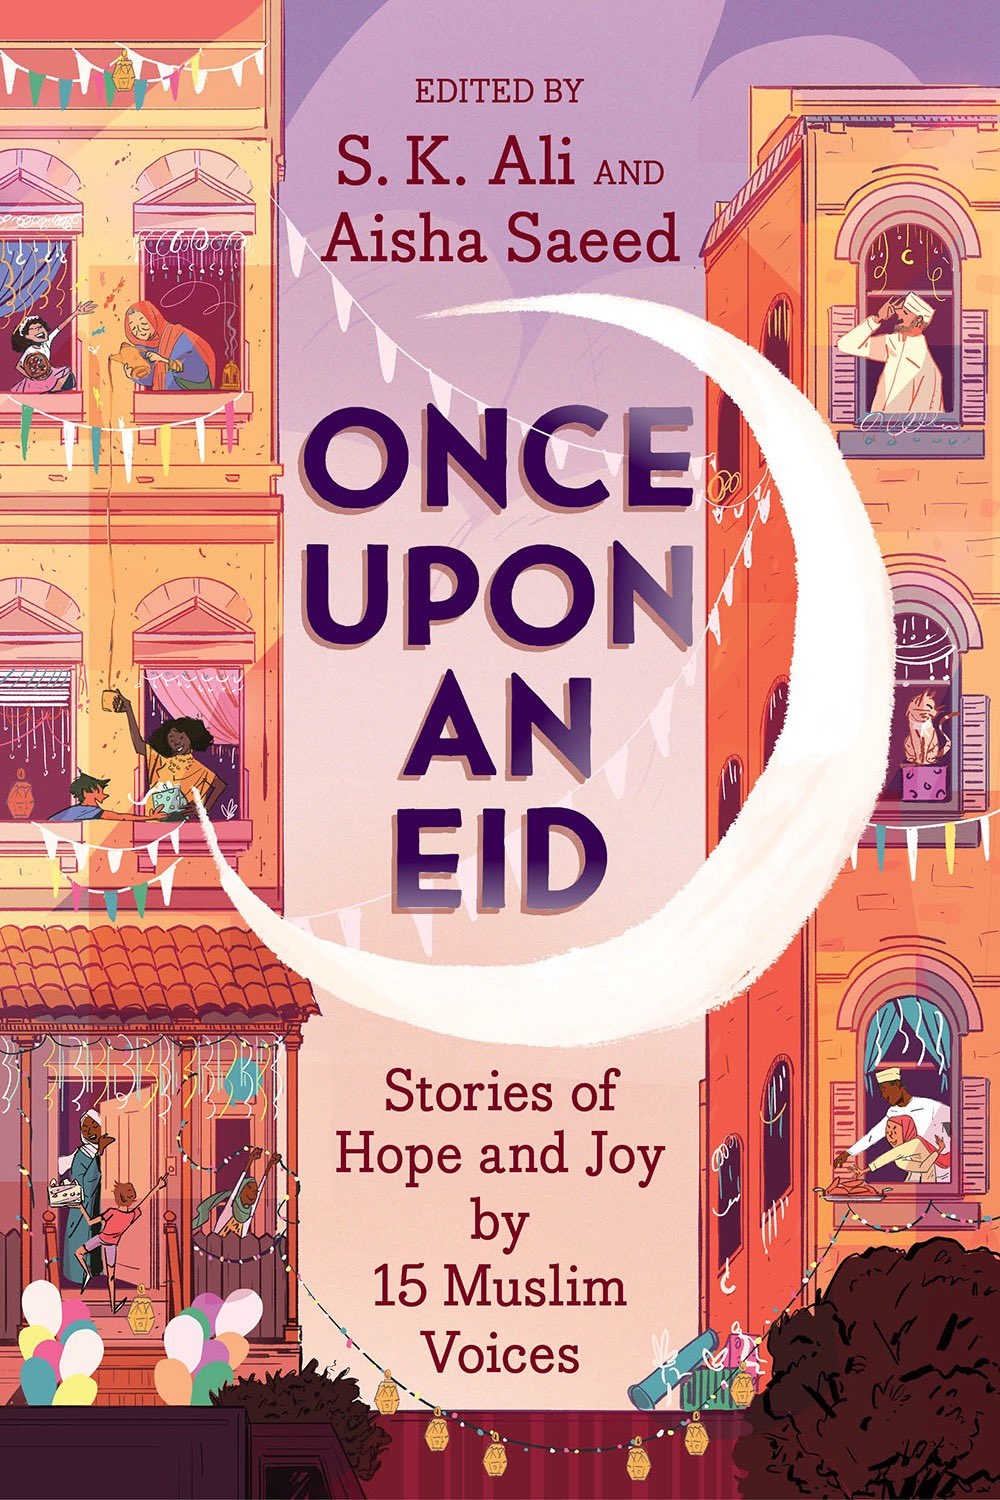 Once Upon an Eid by S.K. Ali